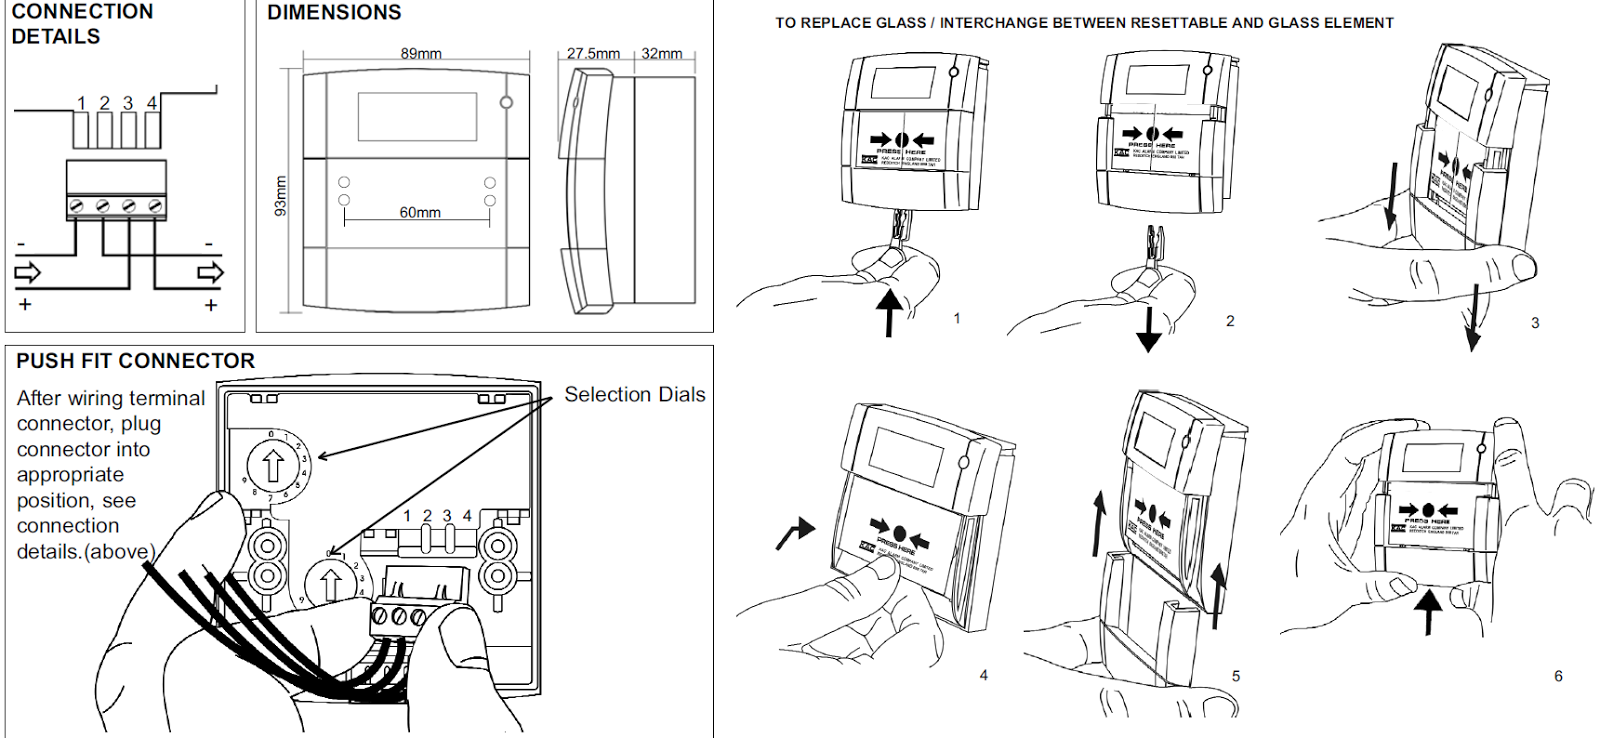 fire alarm call point wiring diagram